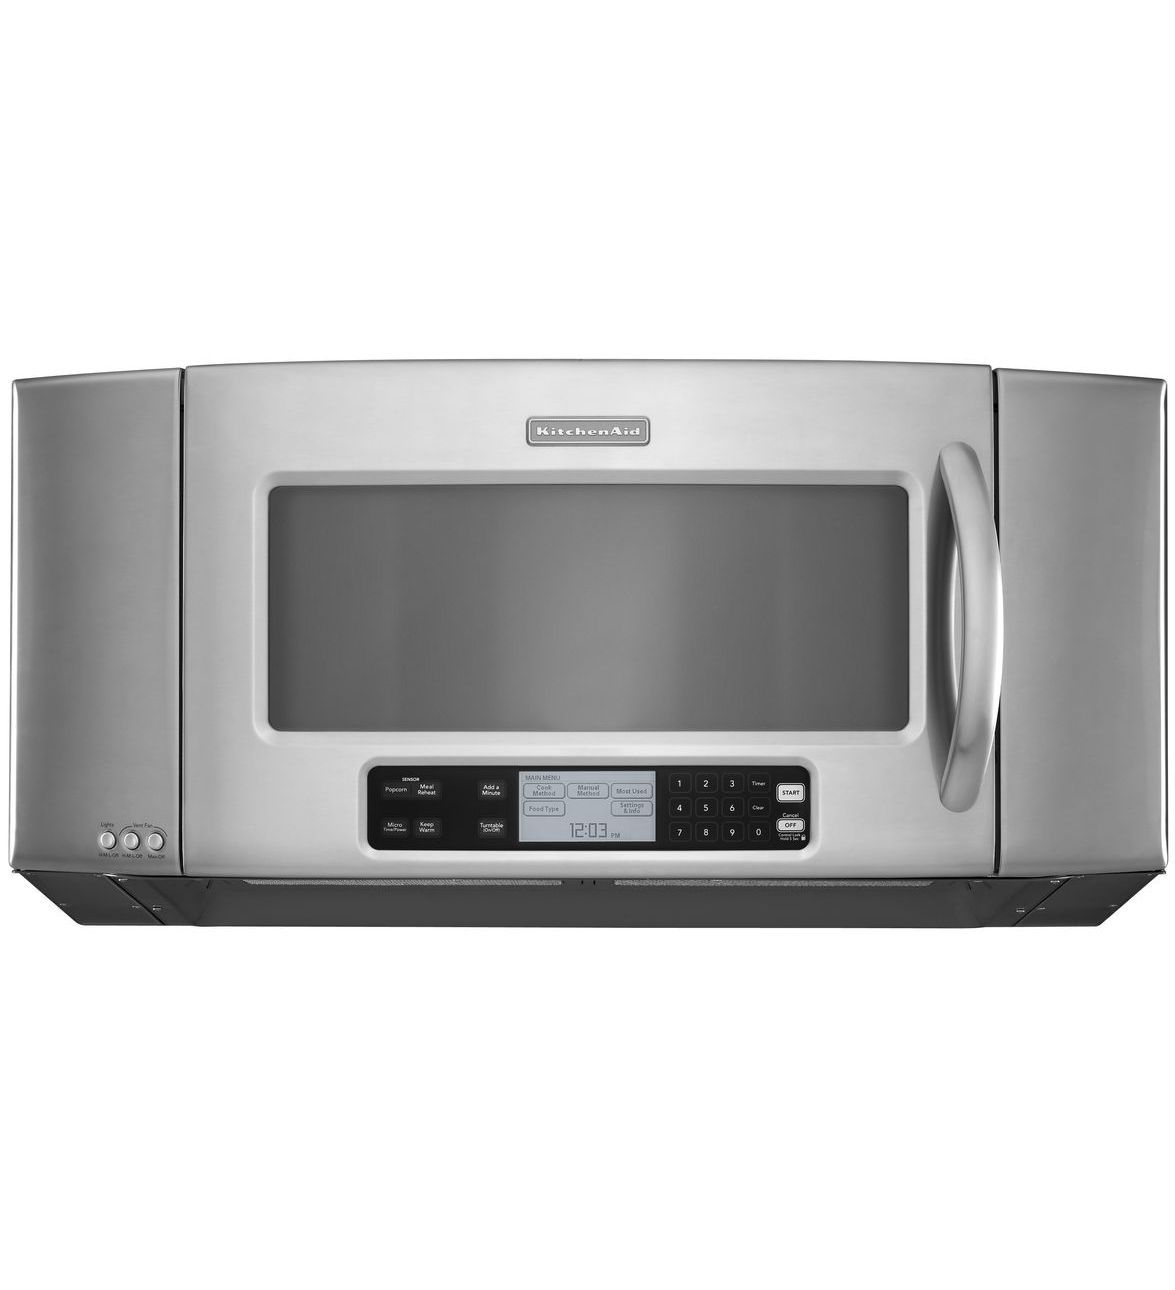 Kitchenaid 36 1200 Watt Microwave Hood Combination Oven